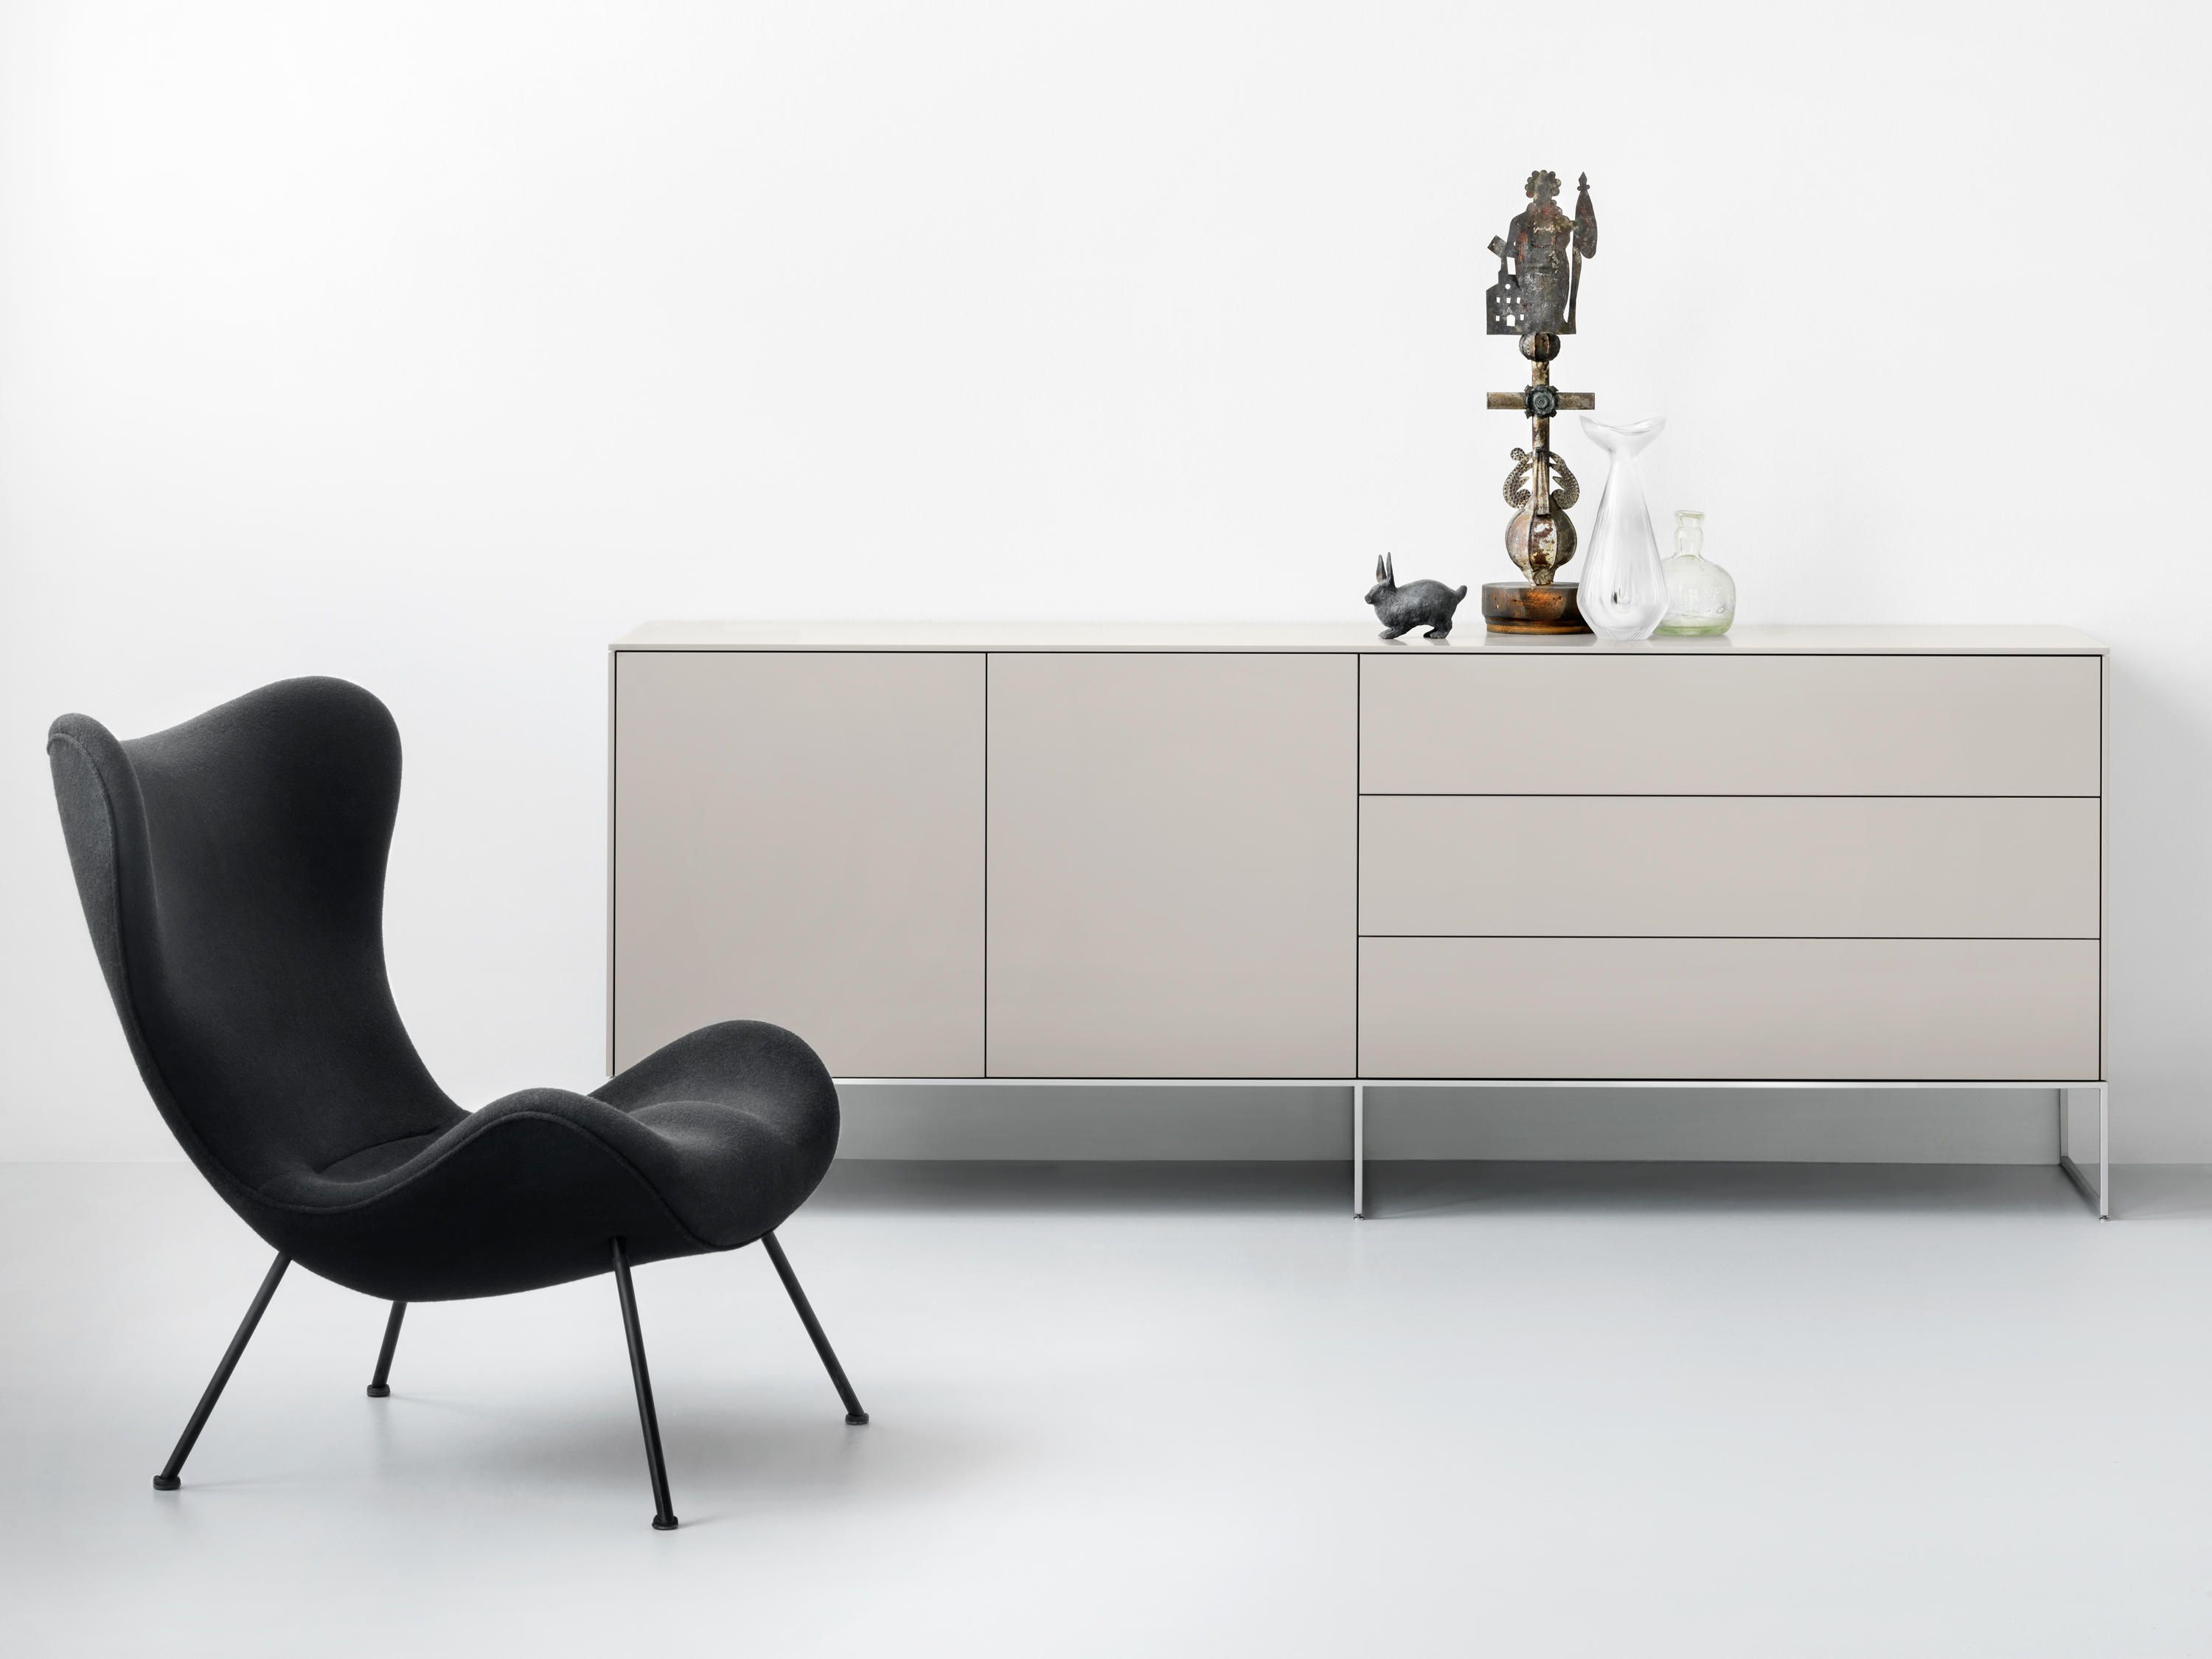 Dvd Regal Wohnzimmer Billig Highboard 110 Cm Breit Sideboard In 2019 Möbel